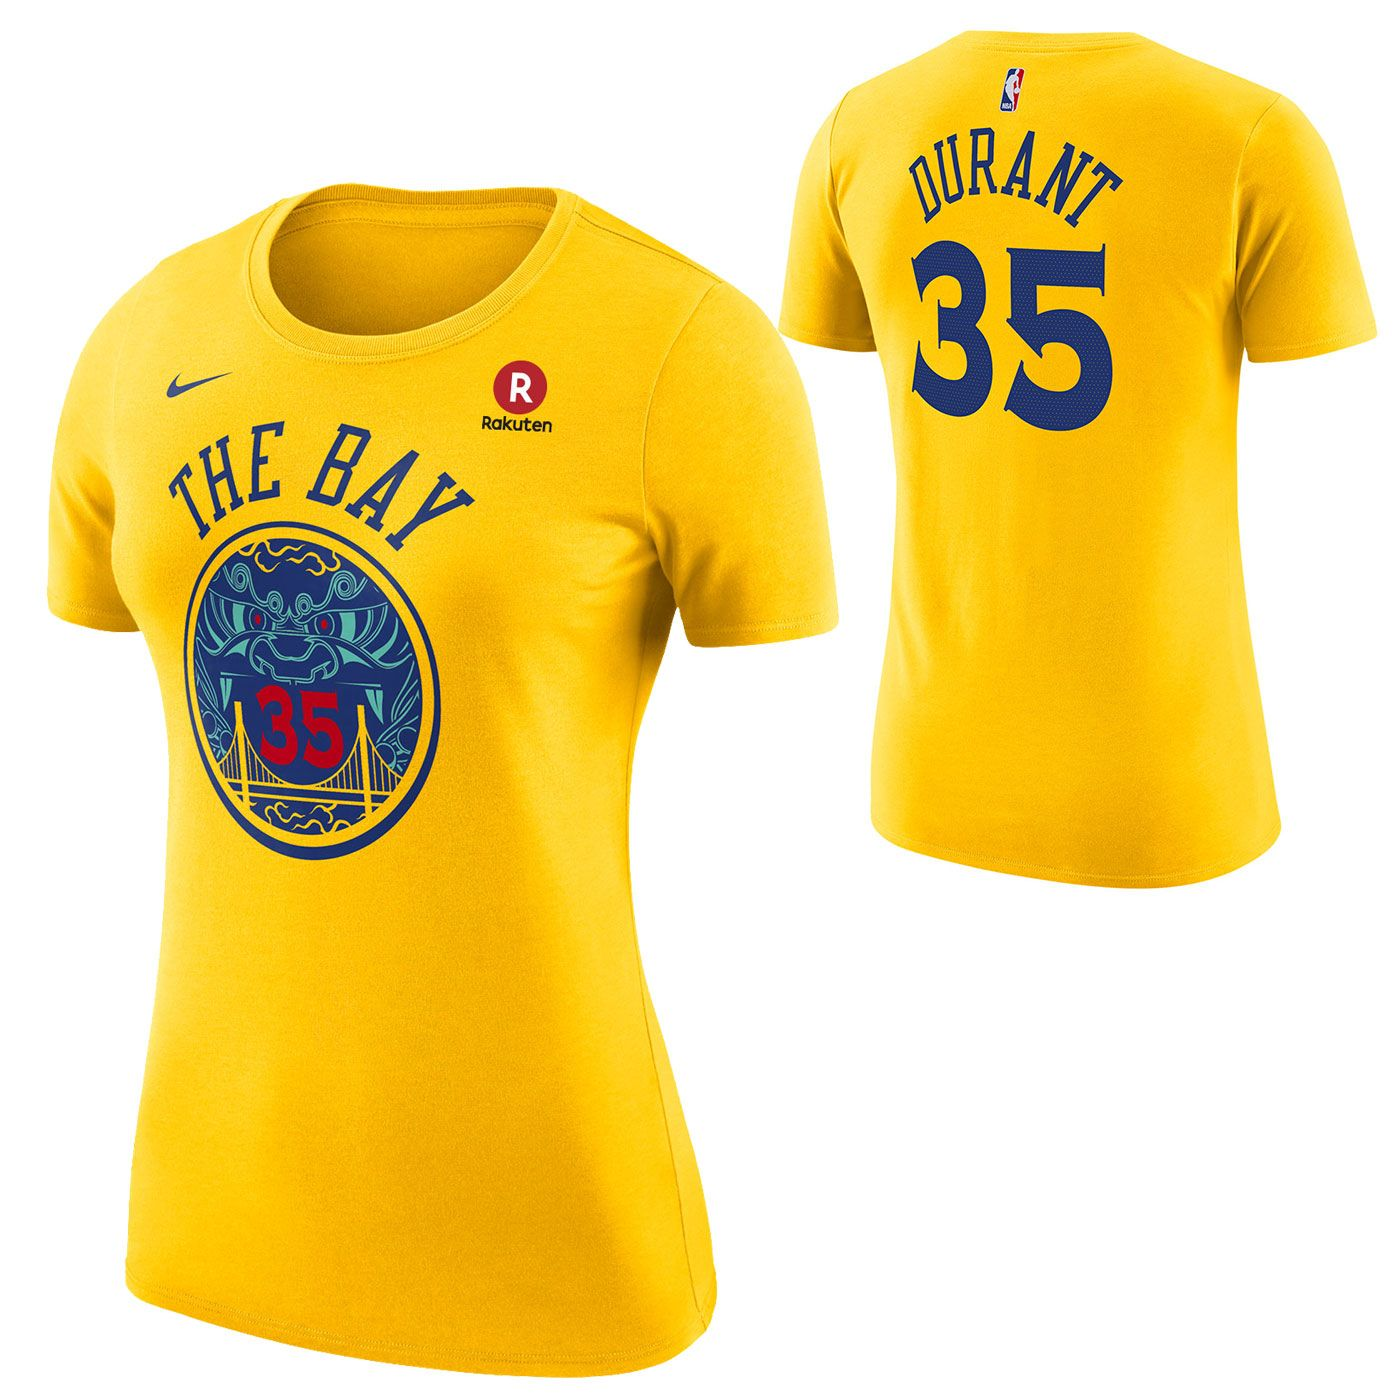 the latest 48aa3 1cc03 Golden State Warriors Nike Dri-FIT Women's City Edition ...